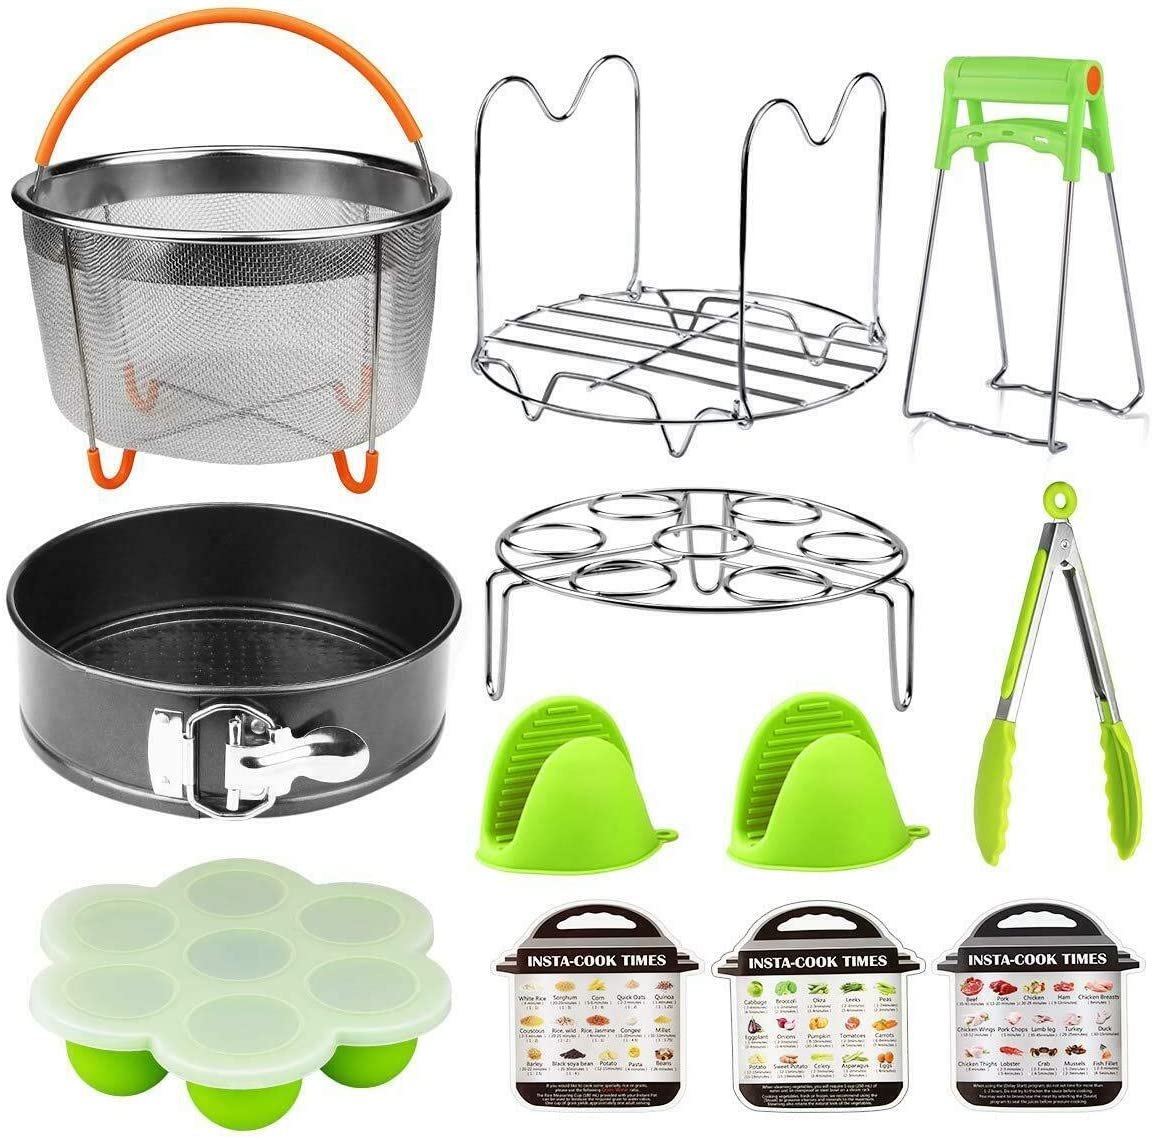 Pressure Cooker Accessories 12 In 1 Set Instant Pot 6, 8 Qt -Steam Cooker Vegetable Steamer Basket, Springform Pan, Egg Steamer Rack, Dish Clip, Steamer Rack trivet Magnetic Cheat Sheets and so on